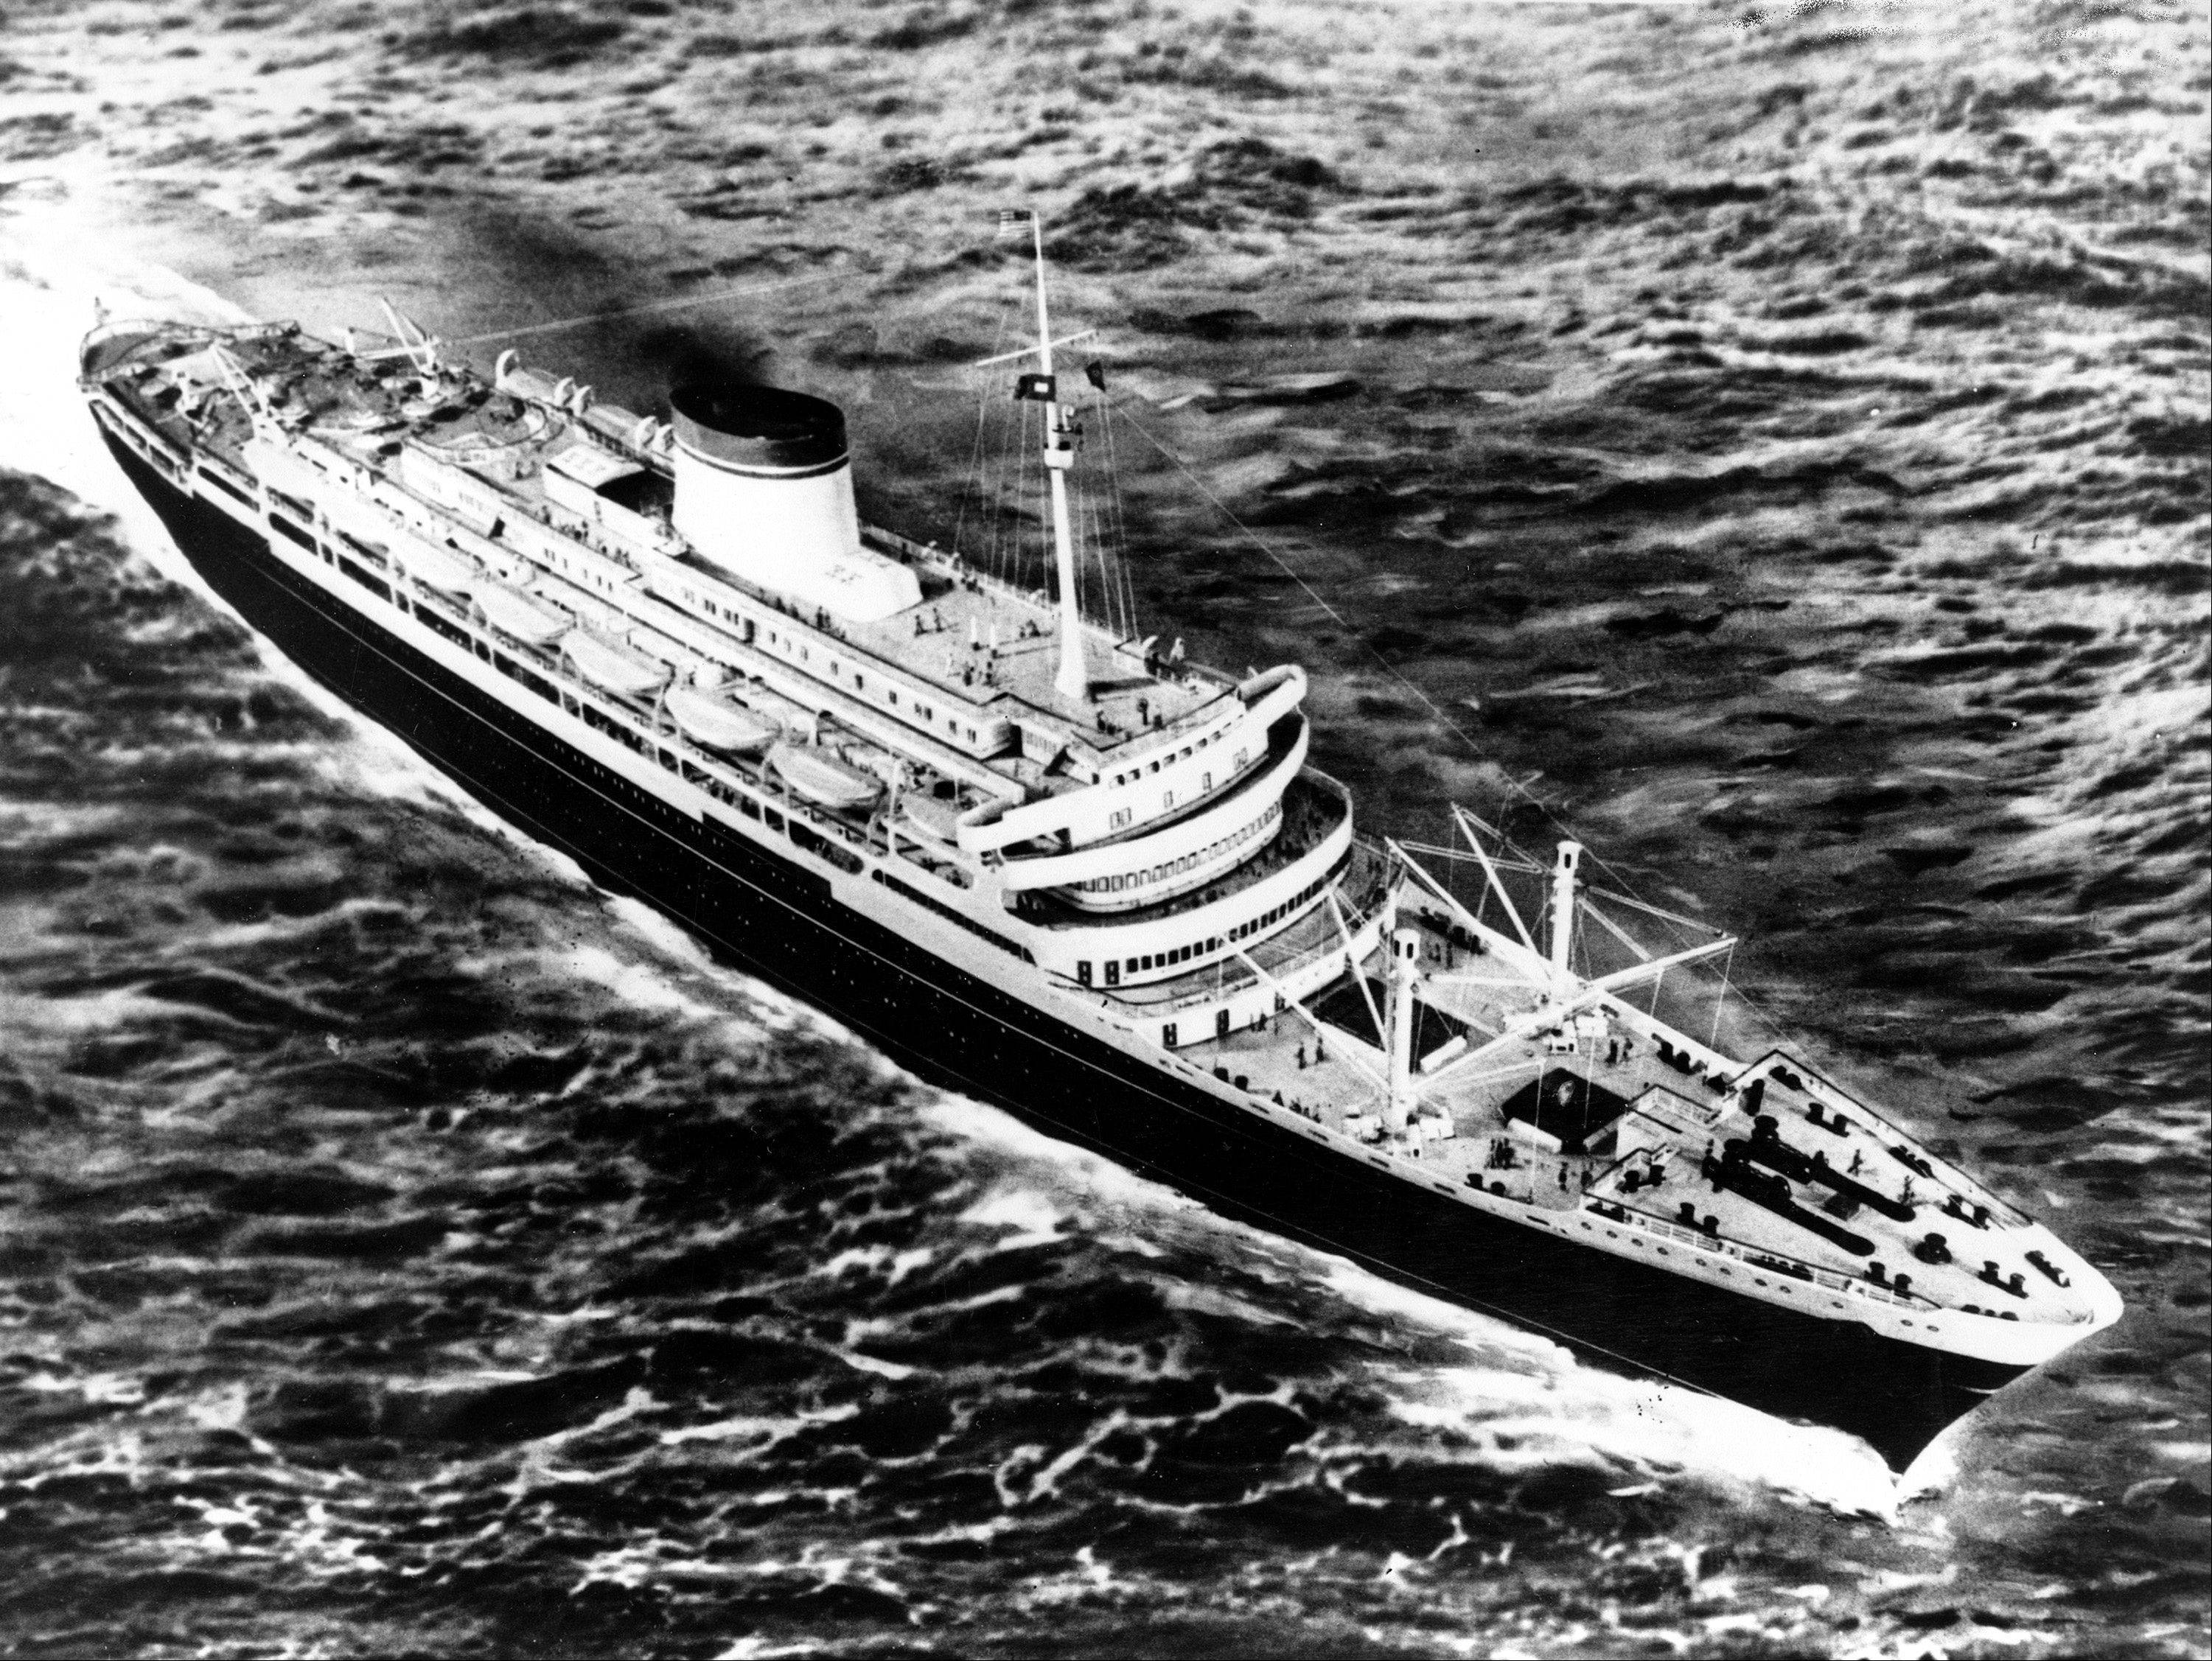 Images: Sinking of the Andrea Doria